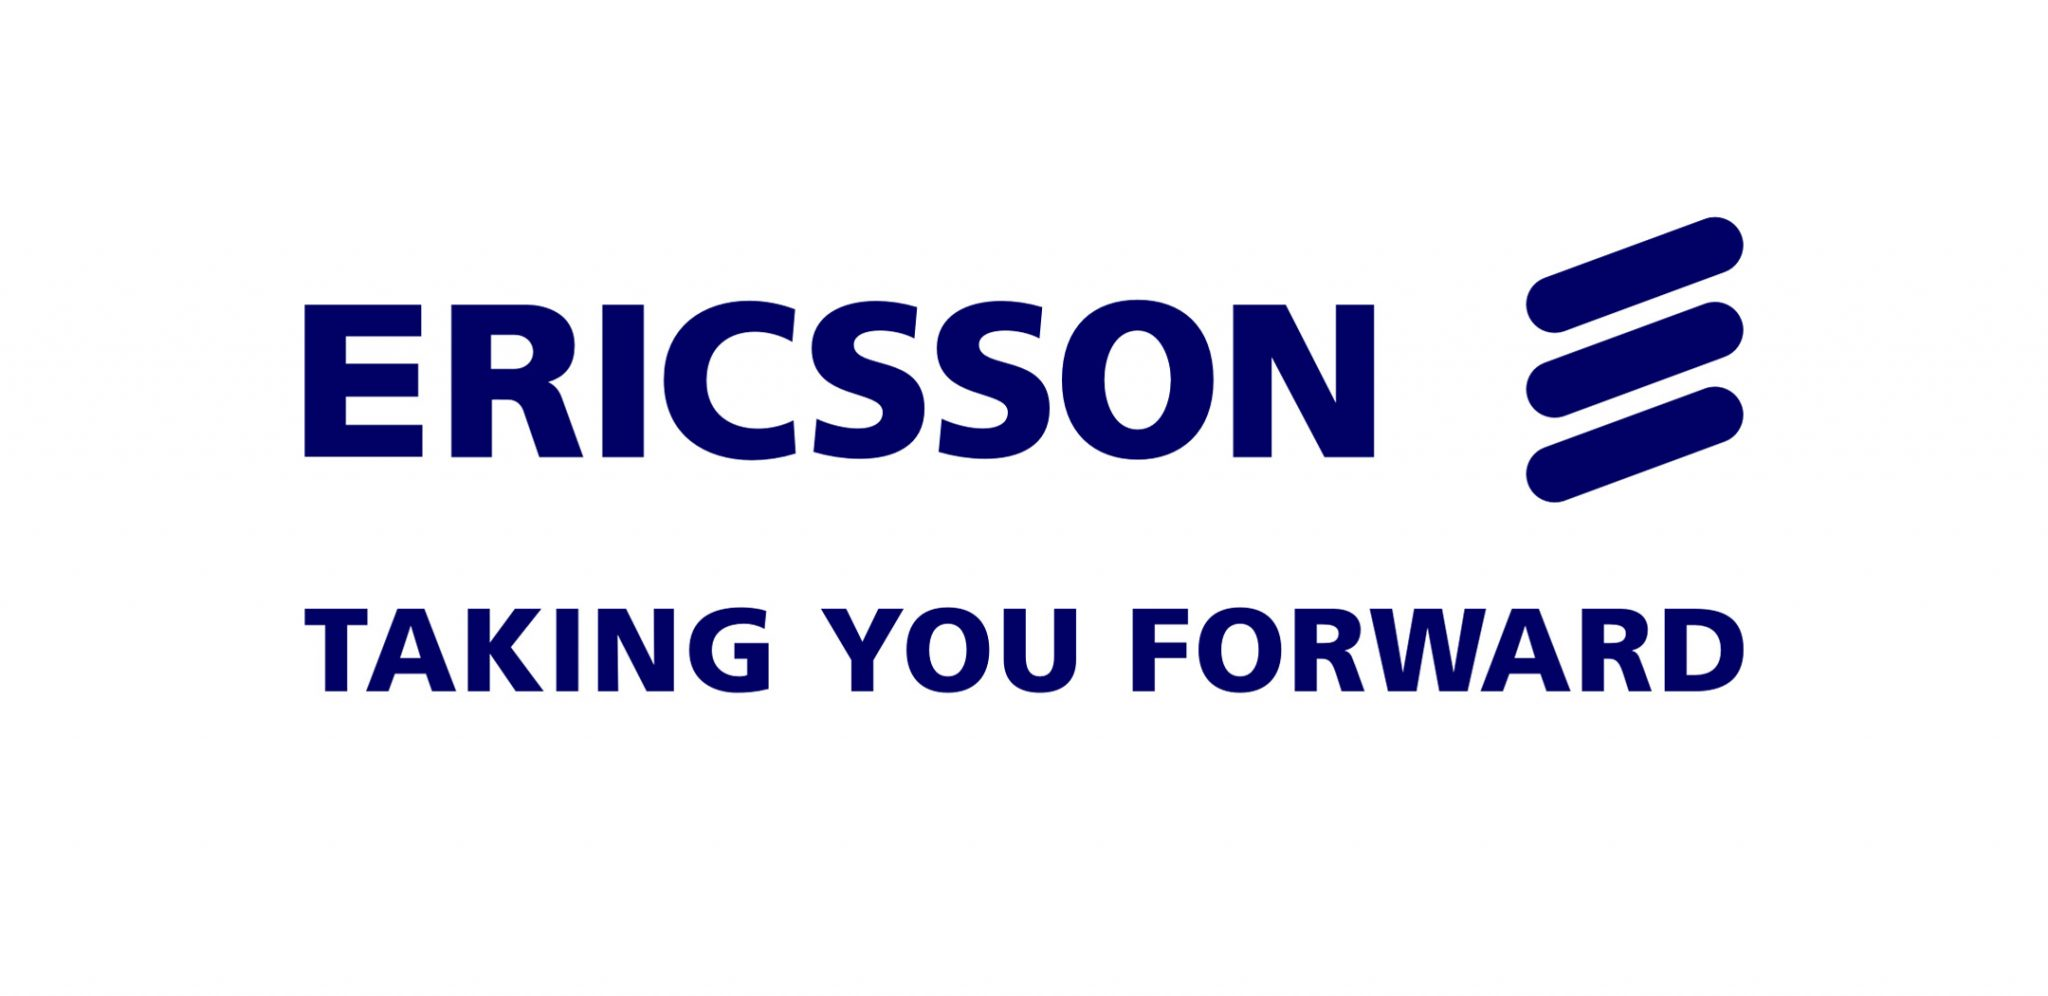 Apple And Ericsson Sign A 7 Year Patent Deal